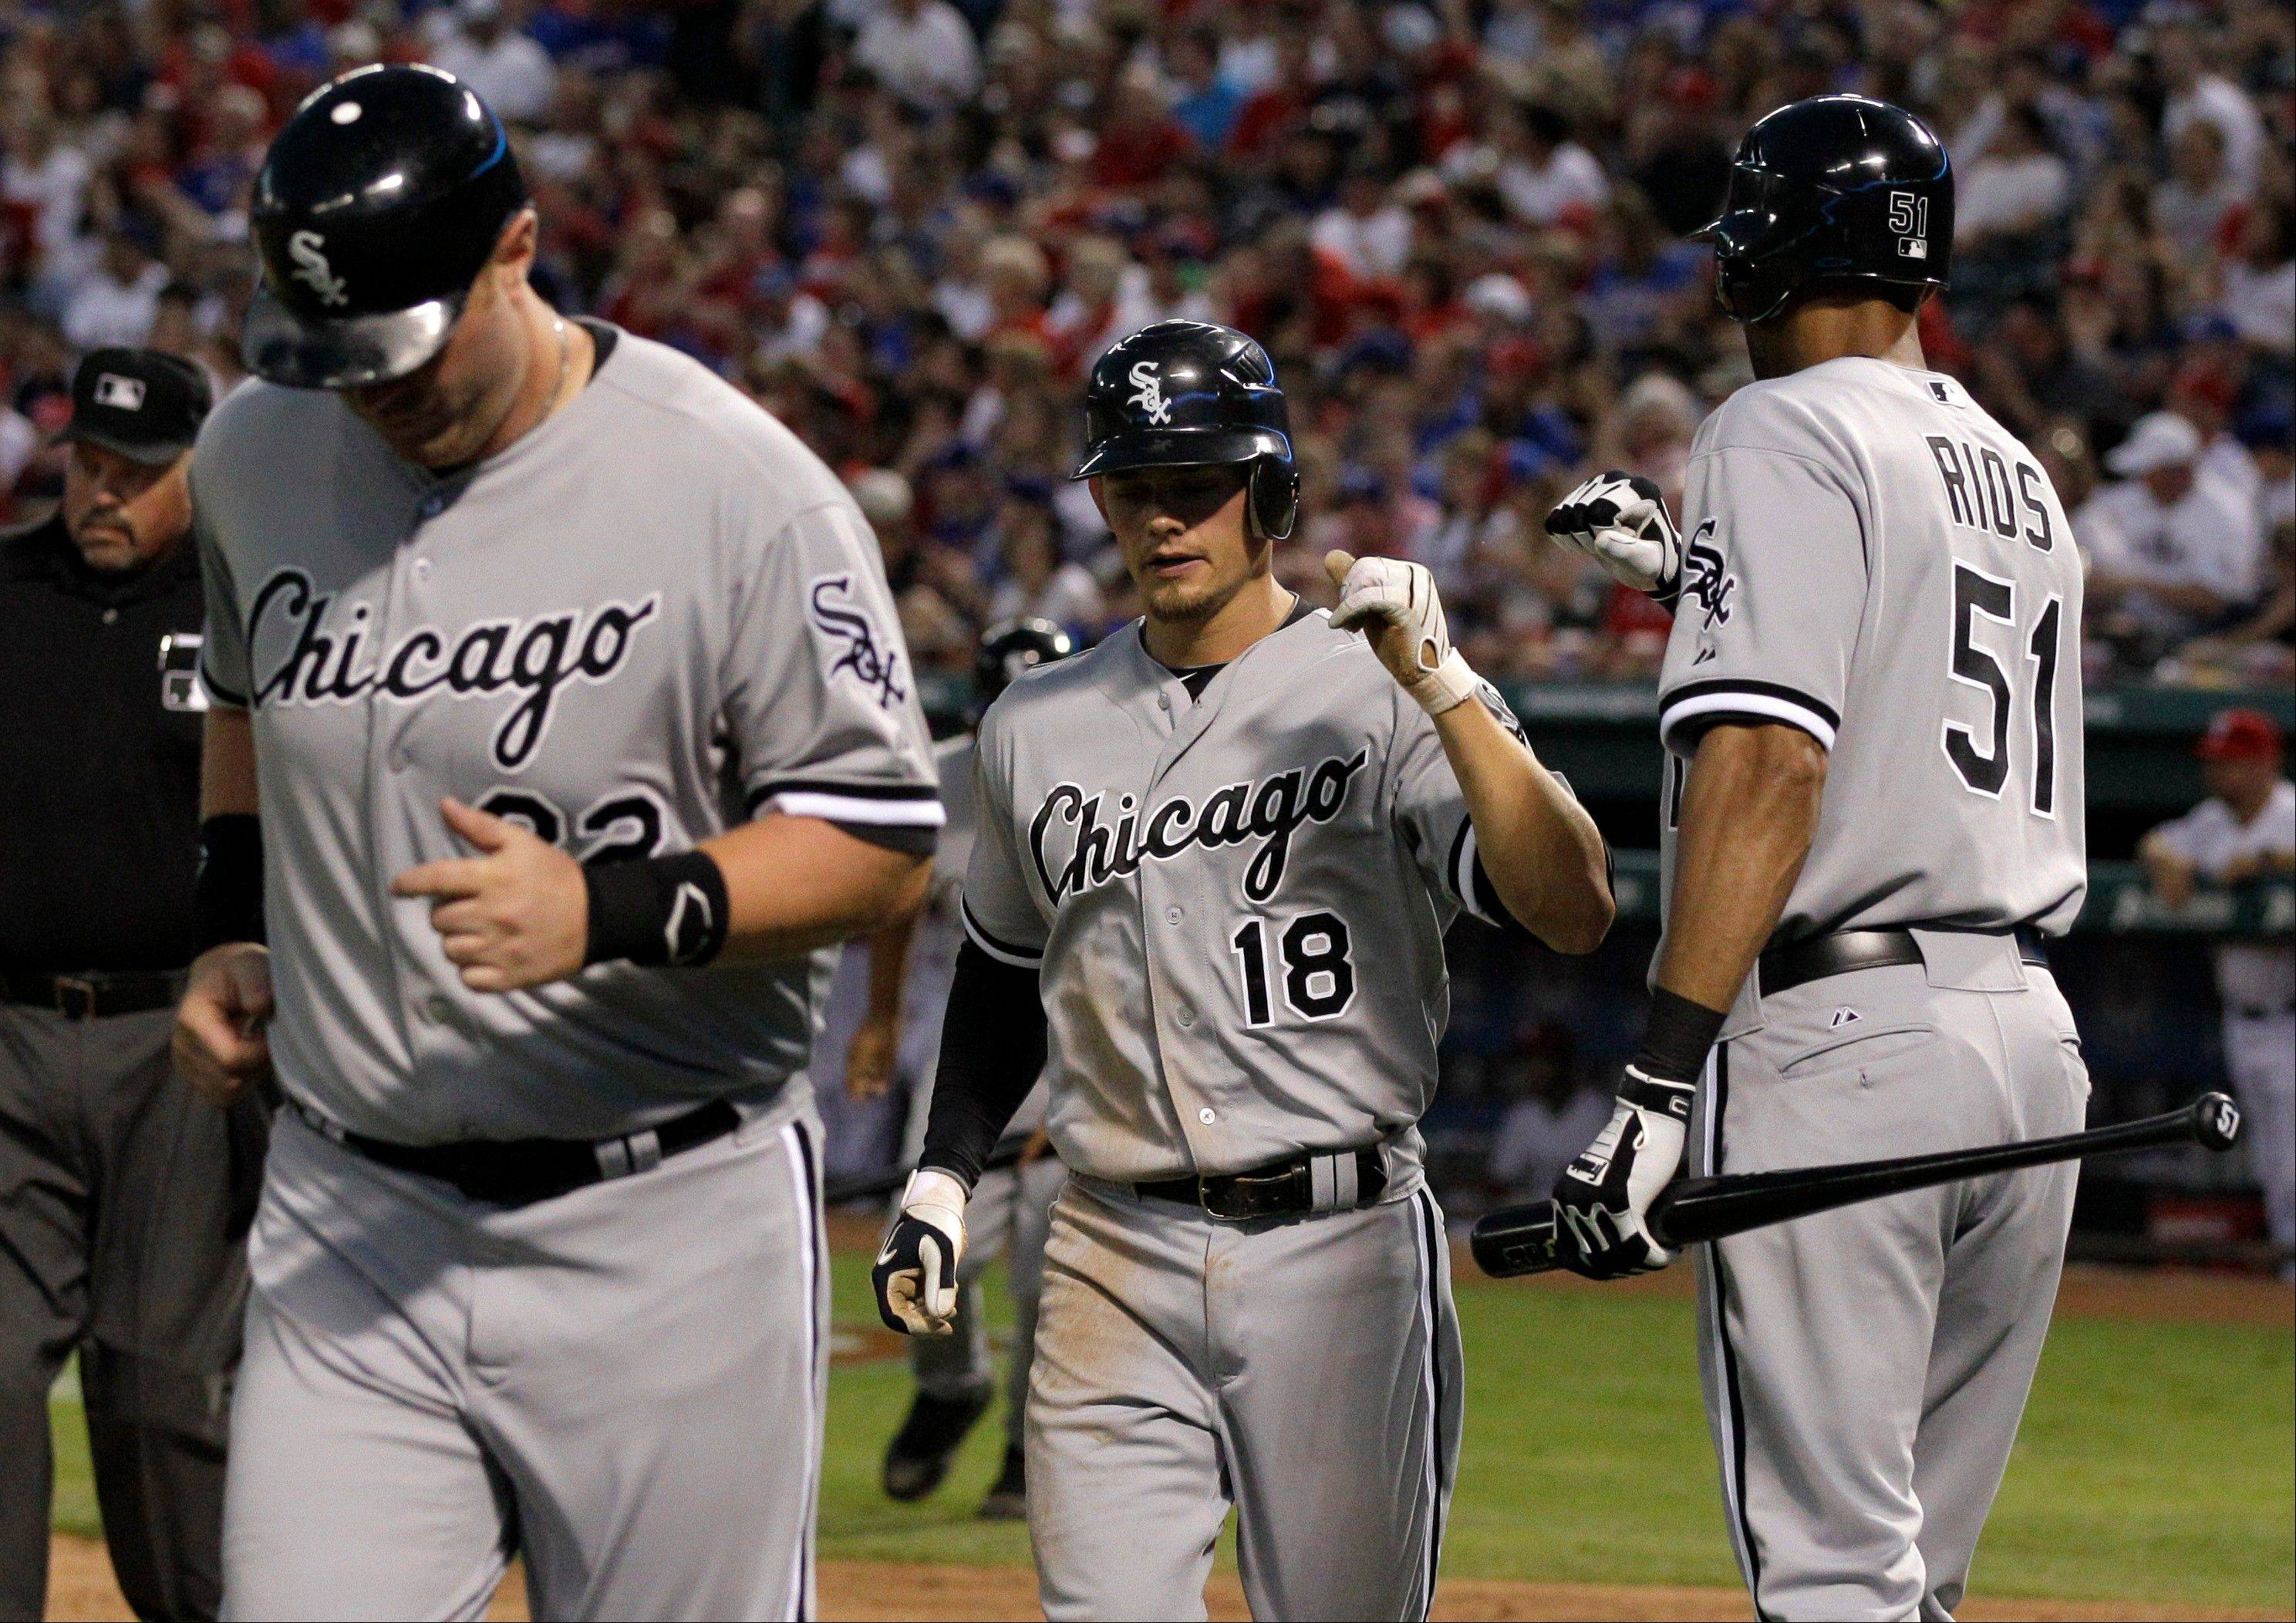 White Sox designated hitter Adam Dunn and Brent Lillibridge are congratulated by Alex Rios Saturday after the two scored on a Paul Konerko double in the third inning.